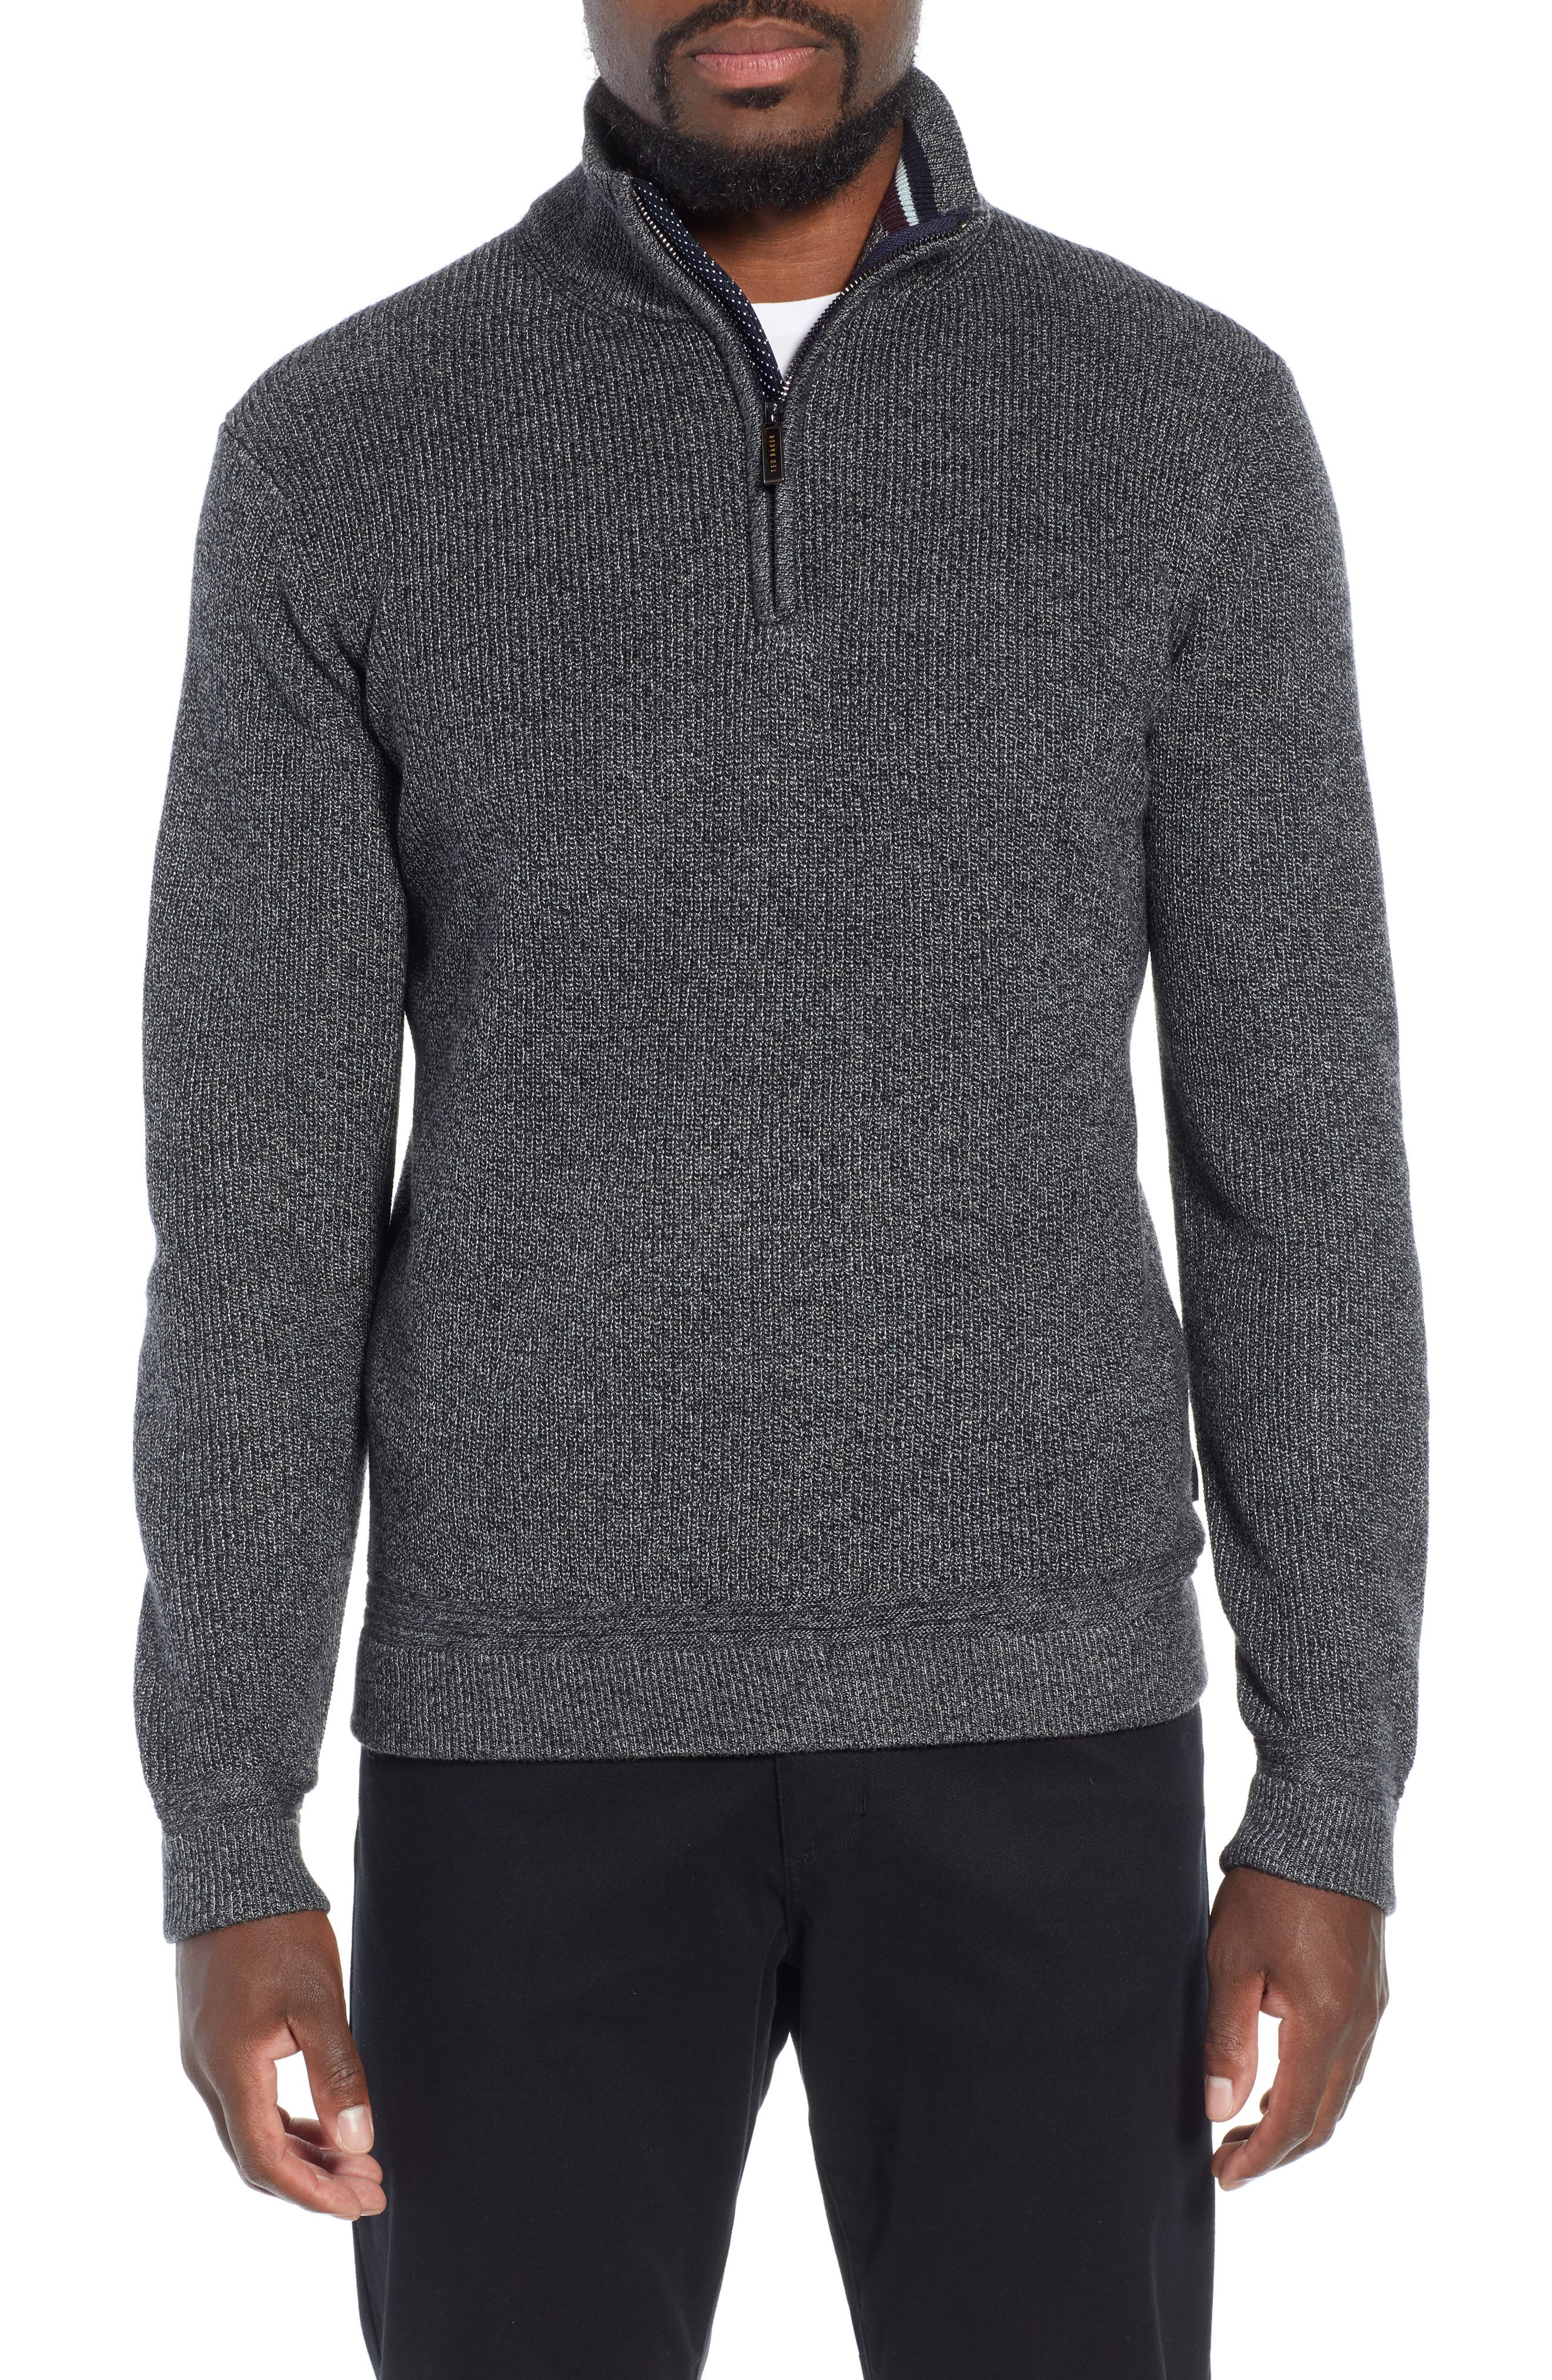 Lohas Slim Fit Funnel Neck Sweater,                             Main thumbnail 1, color,                             CHARCOAL